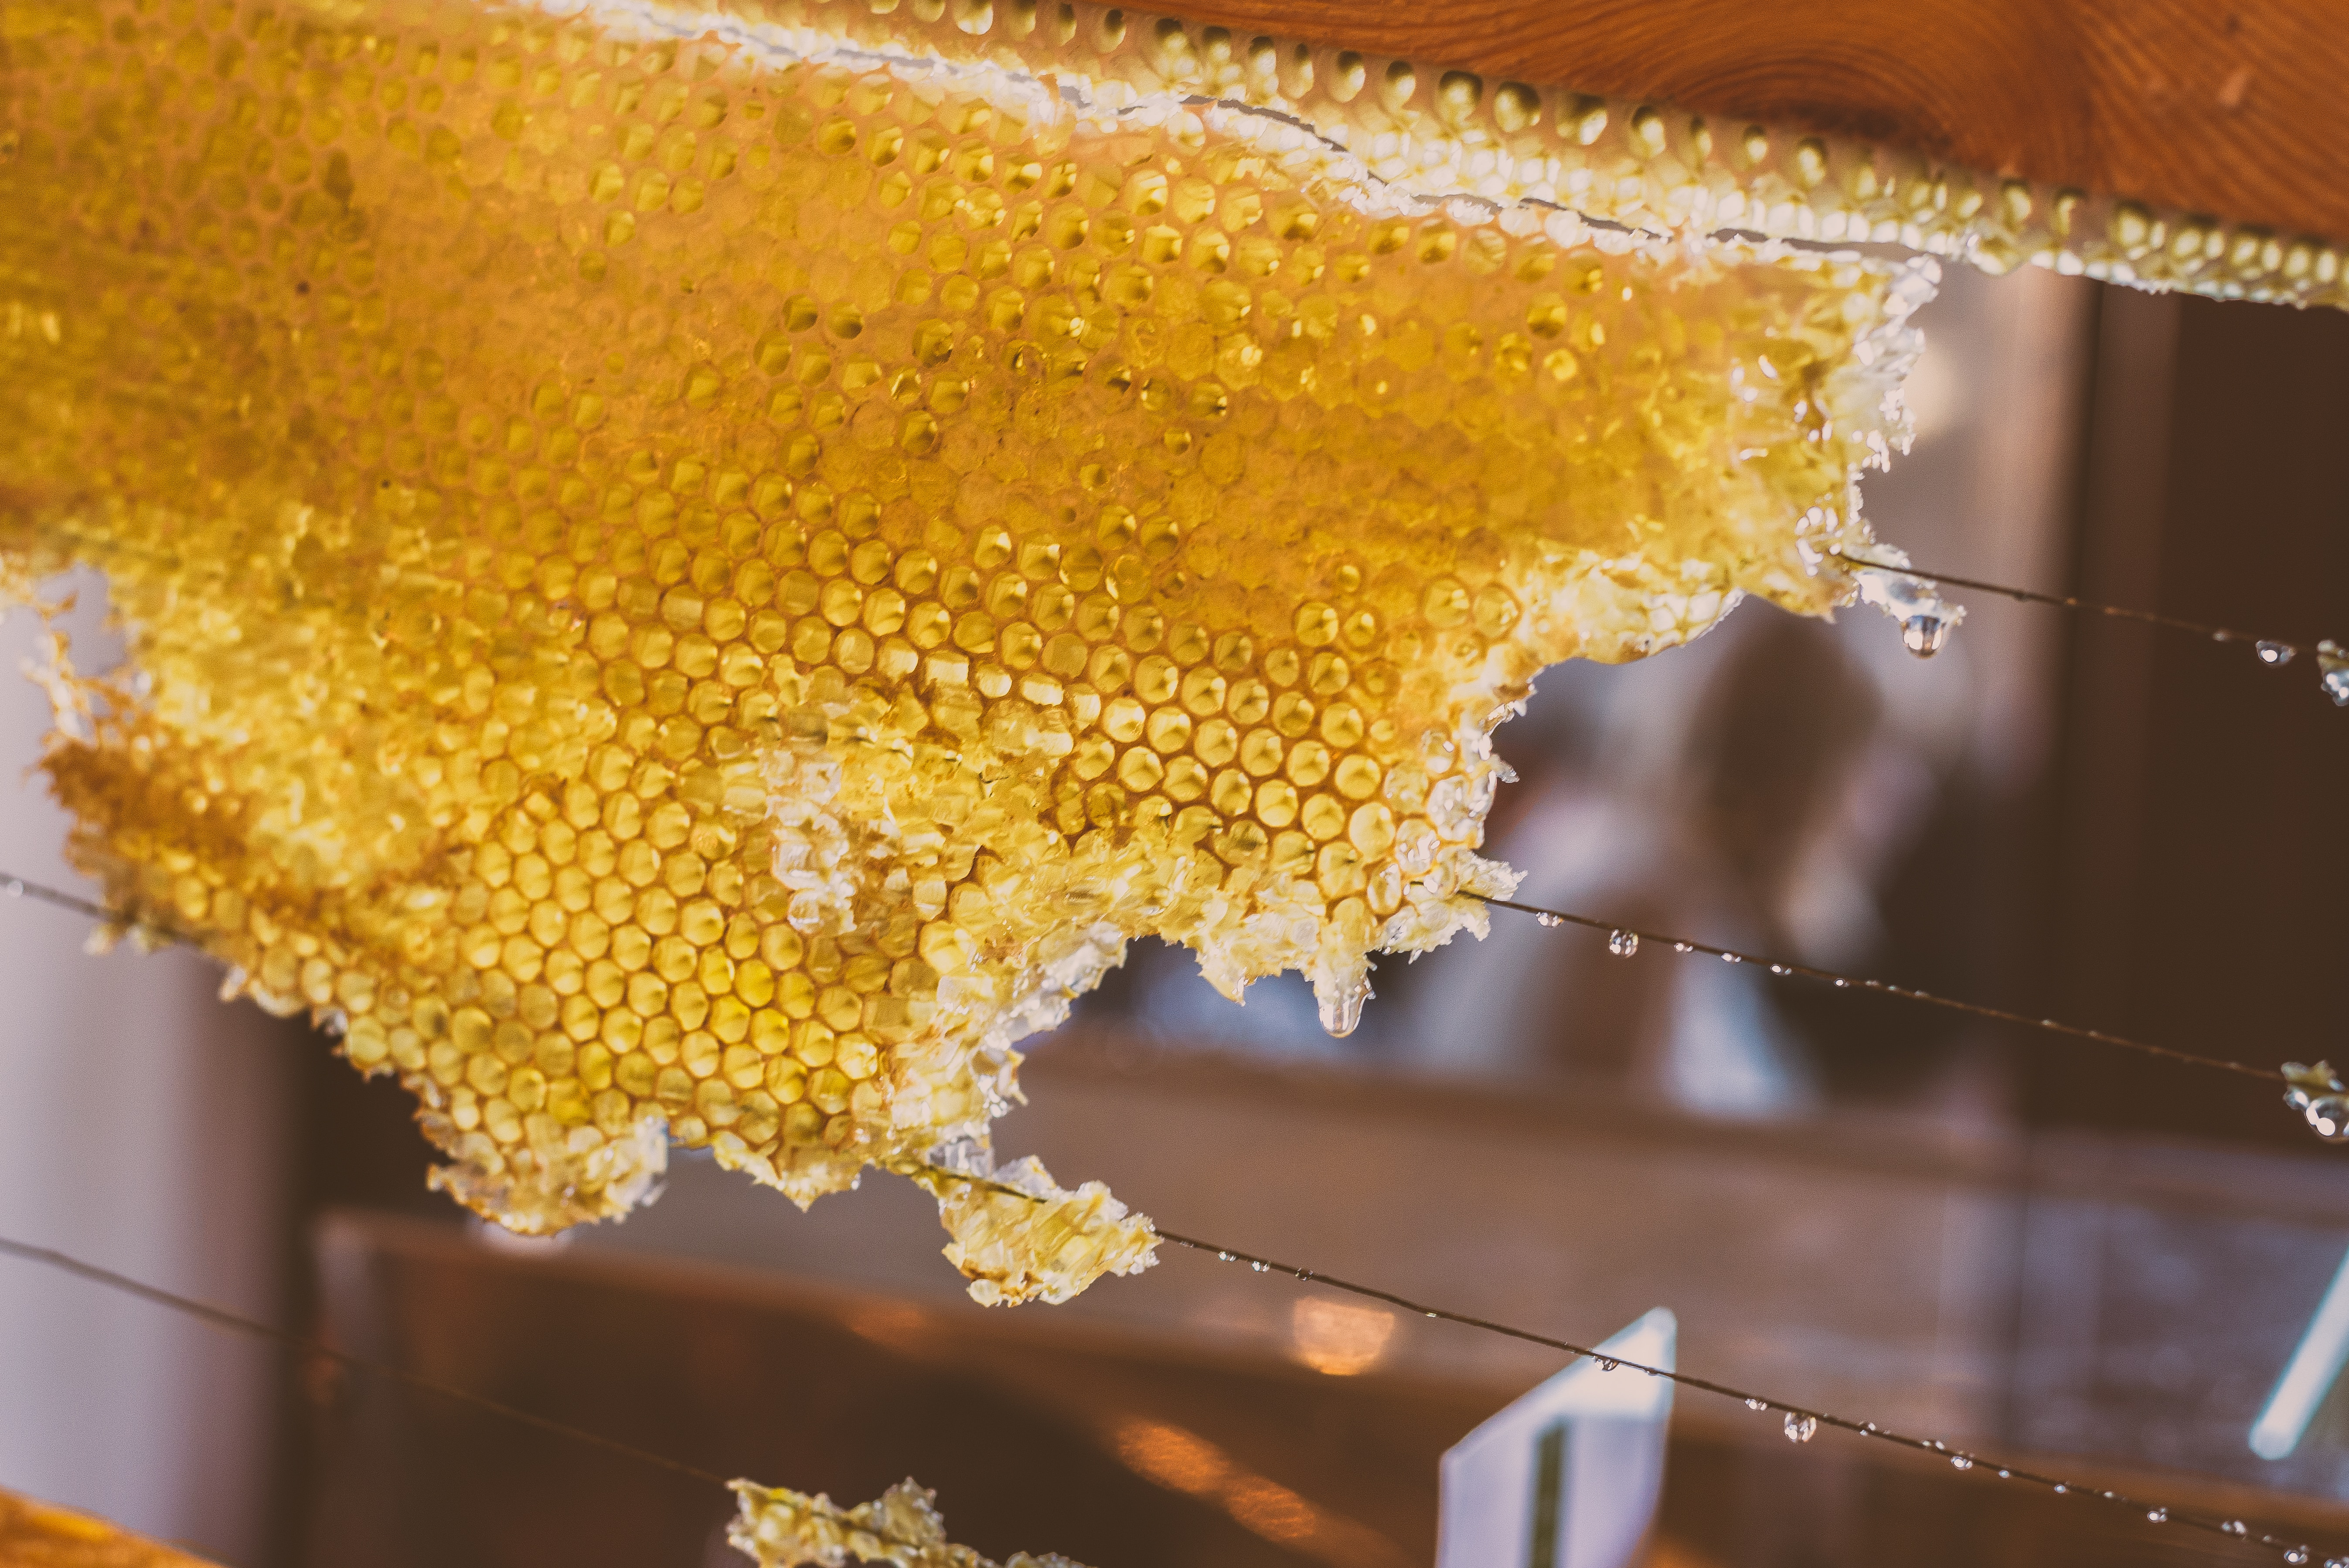 Close up of a beehive frame with partial honeycomb, dripping with golden honey